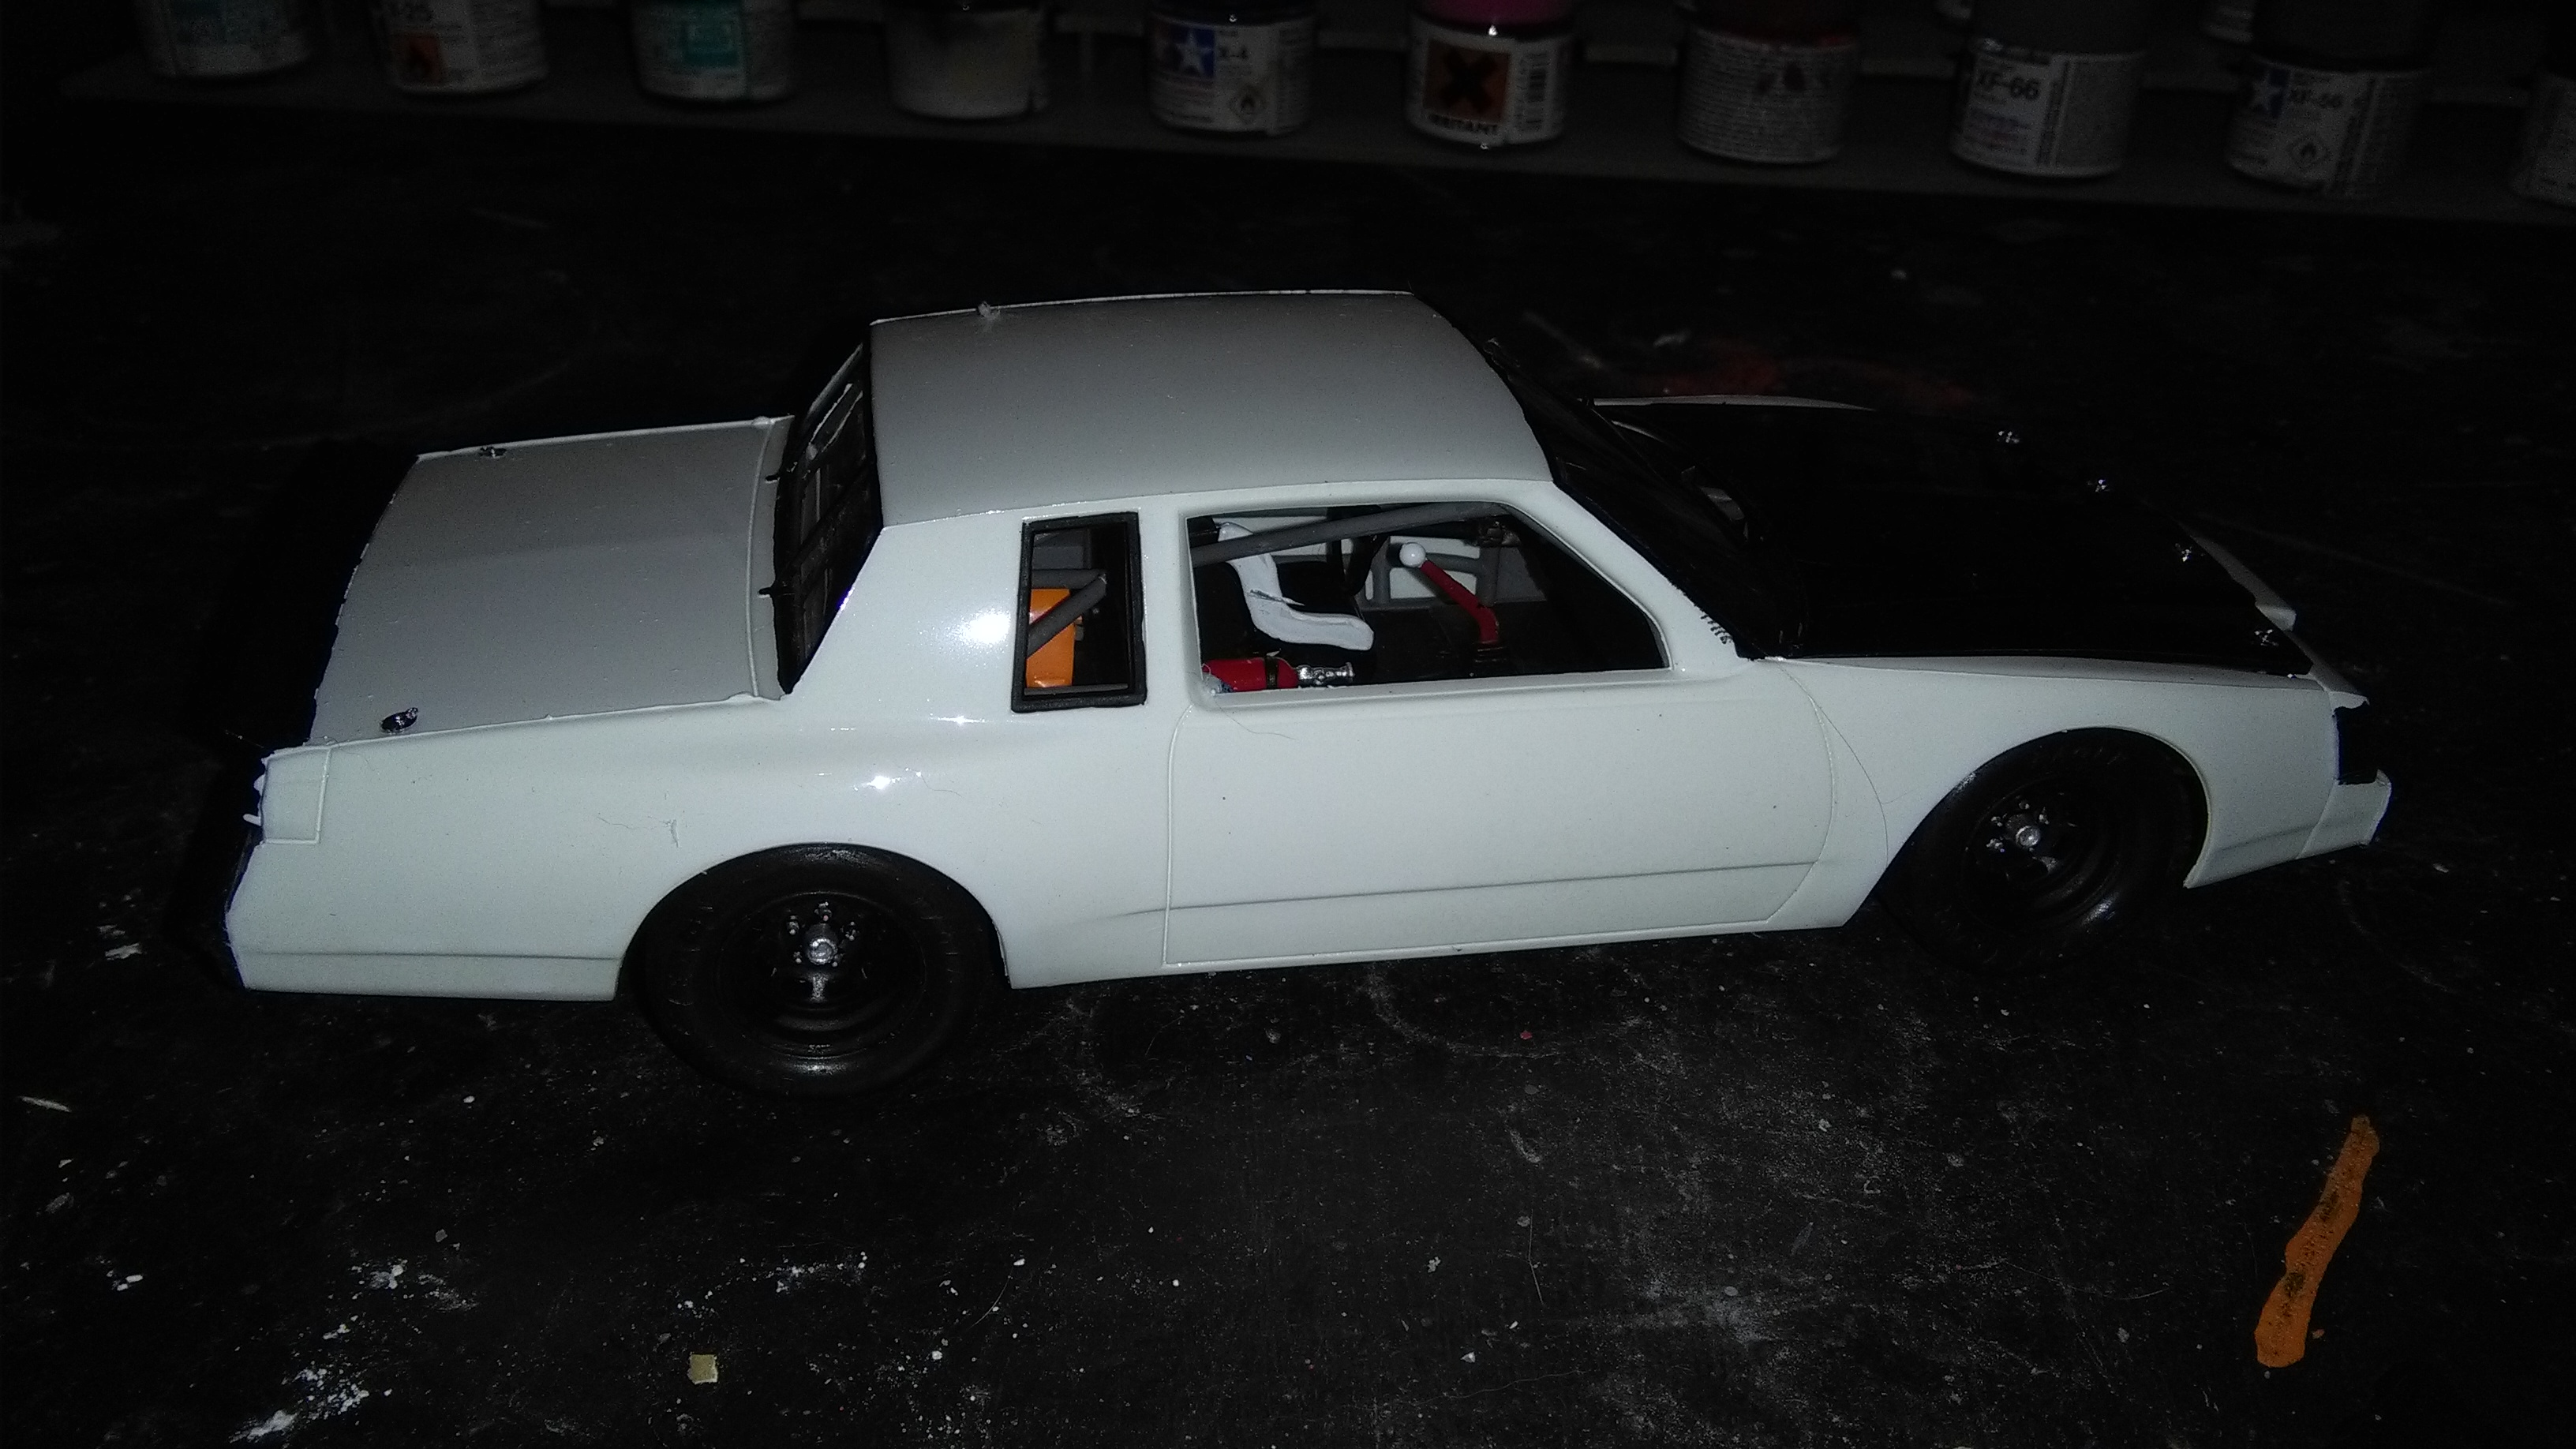 Buick Regal 1982 #52 Jimmy Means Broadway motor  454898IMG20170212183344